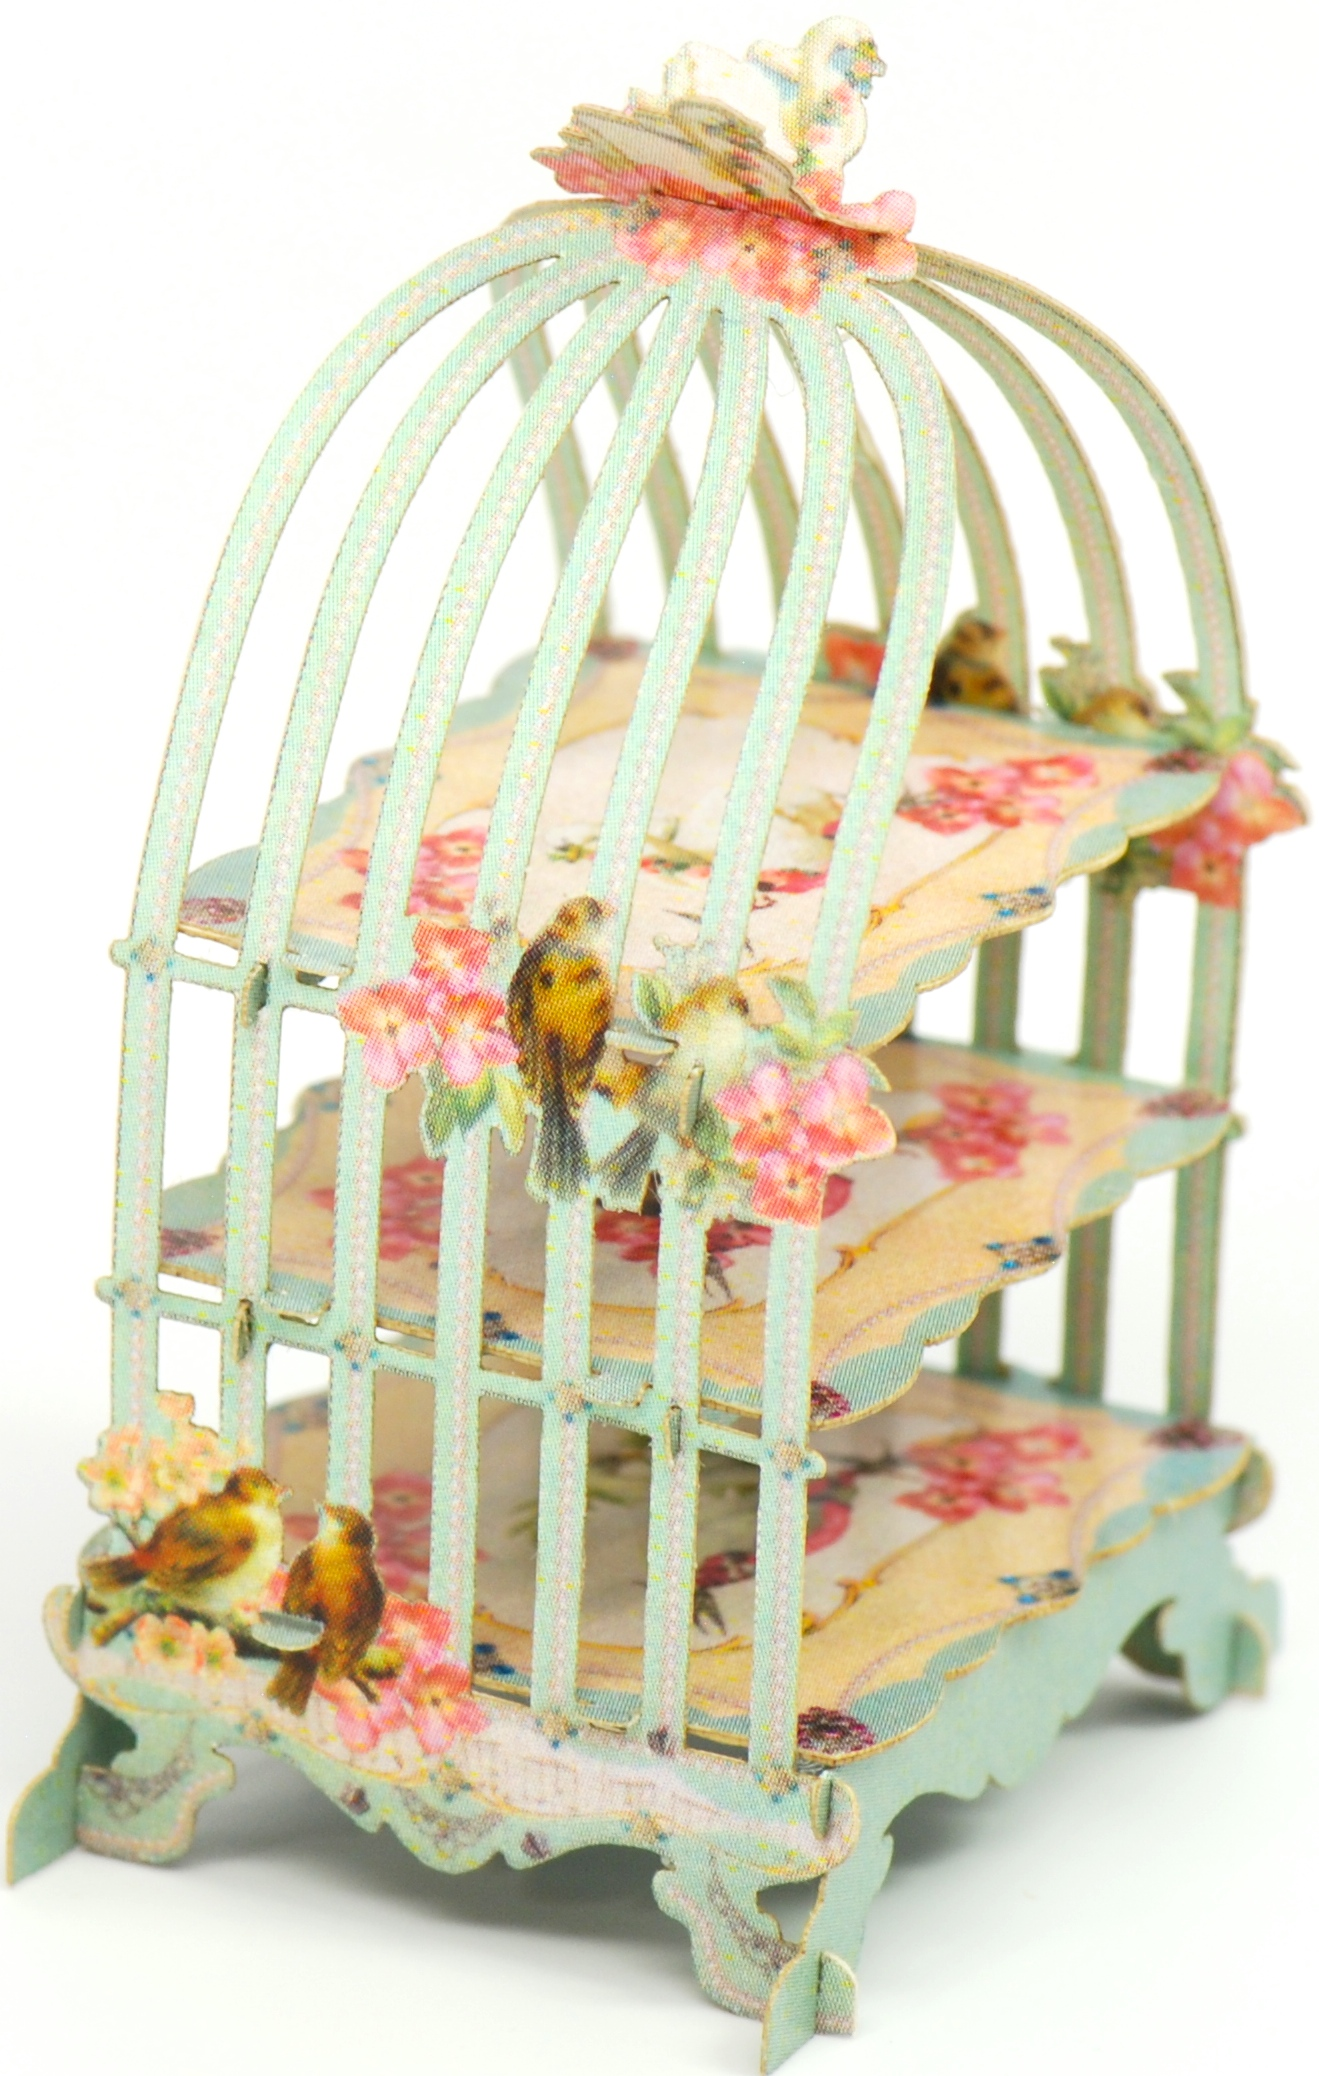 12 Birdcage Pastry Tower | Stewart Dollhouse Creations